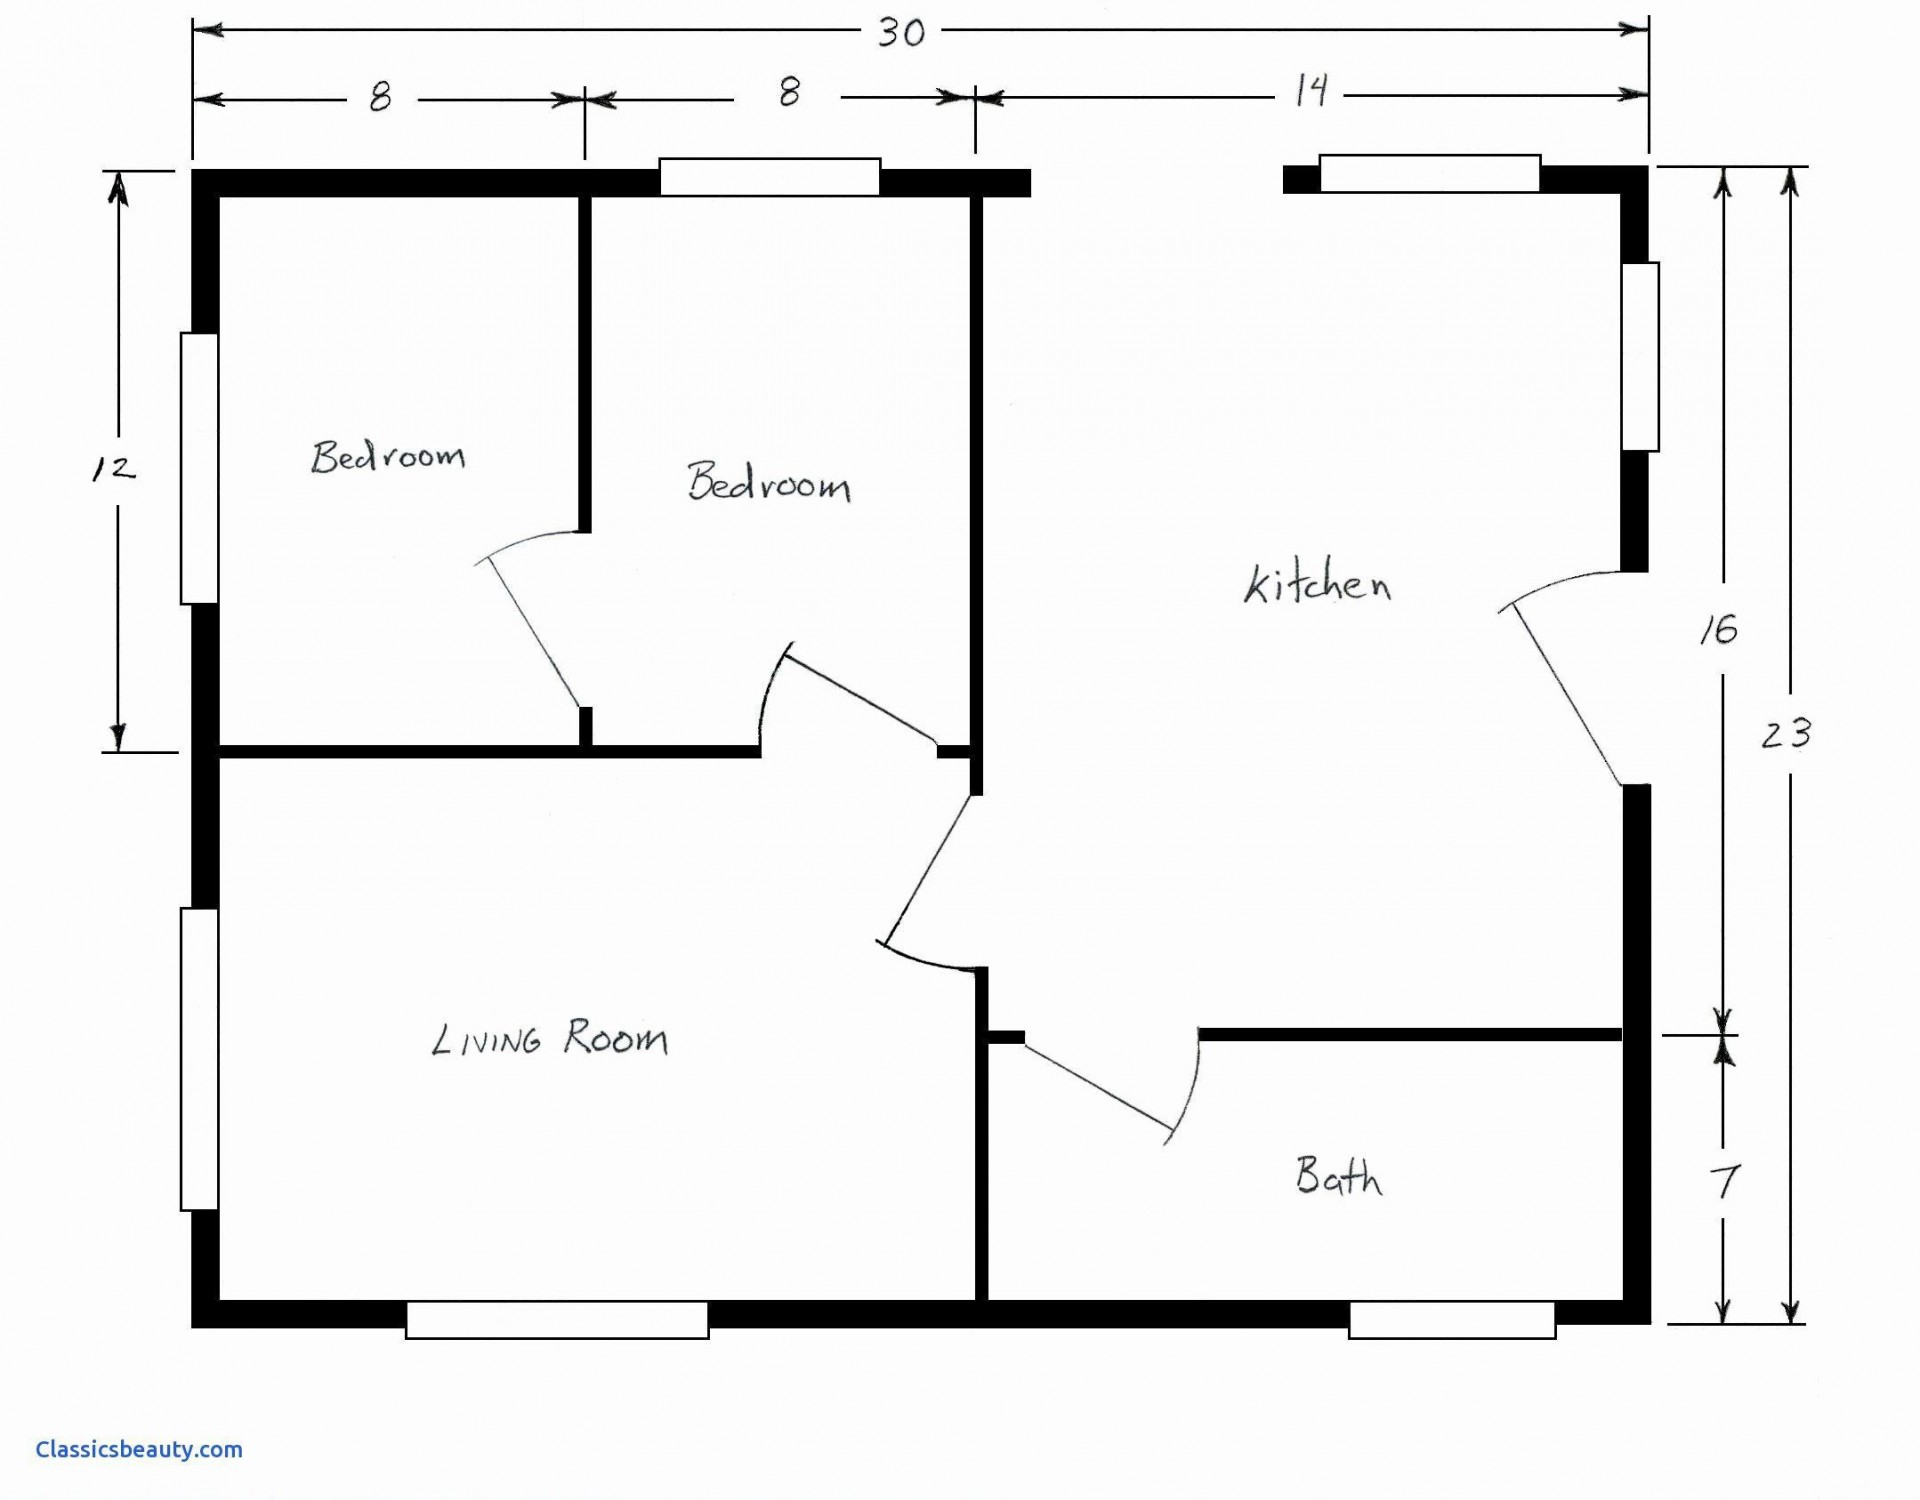 009 Stupendou Free Floor Plan Template High Resolution  Excel Home House Sample1920